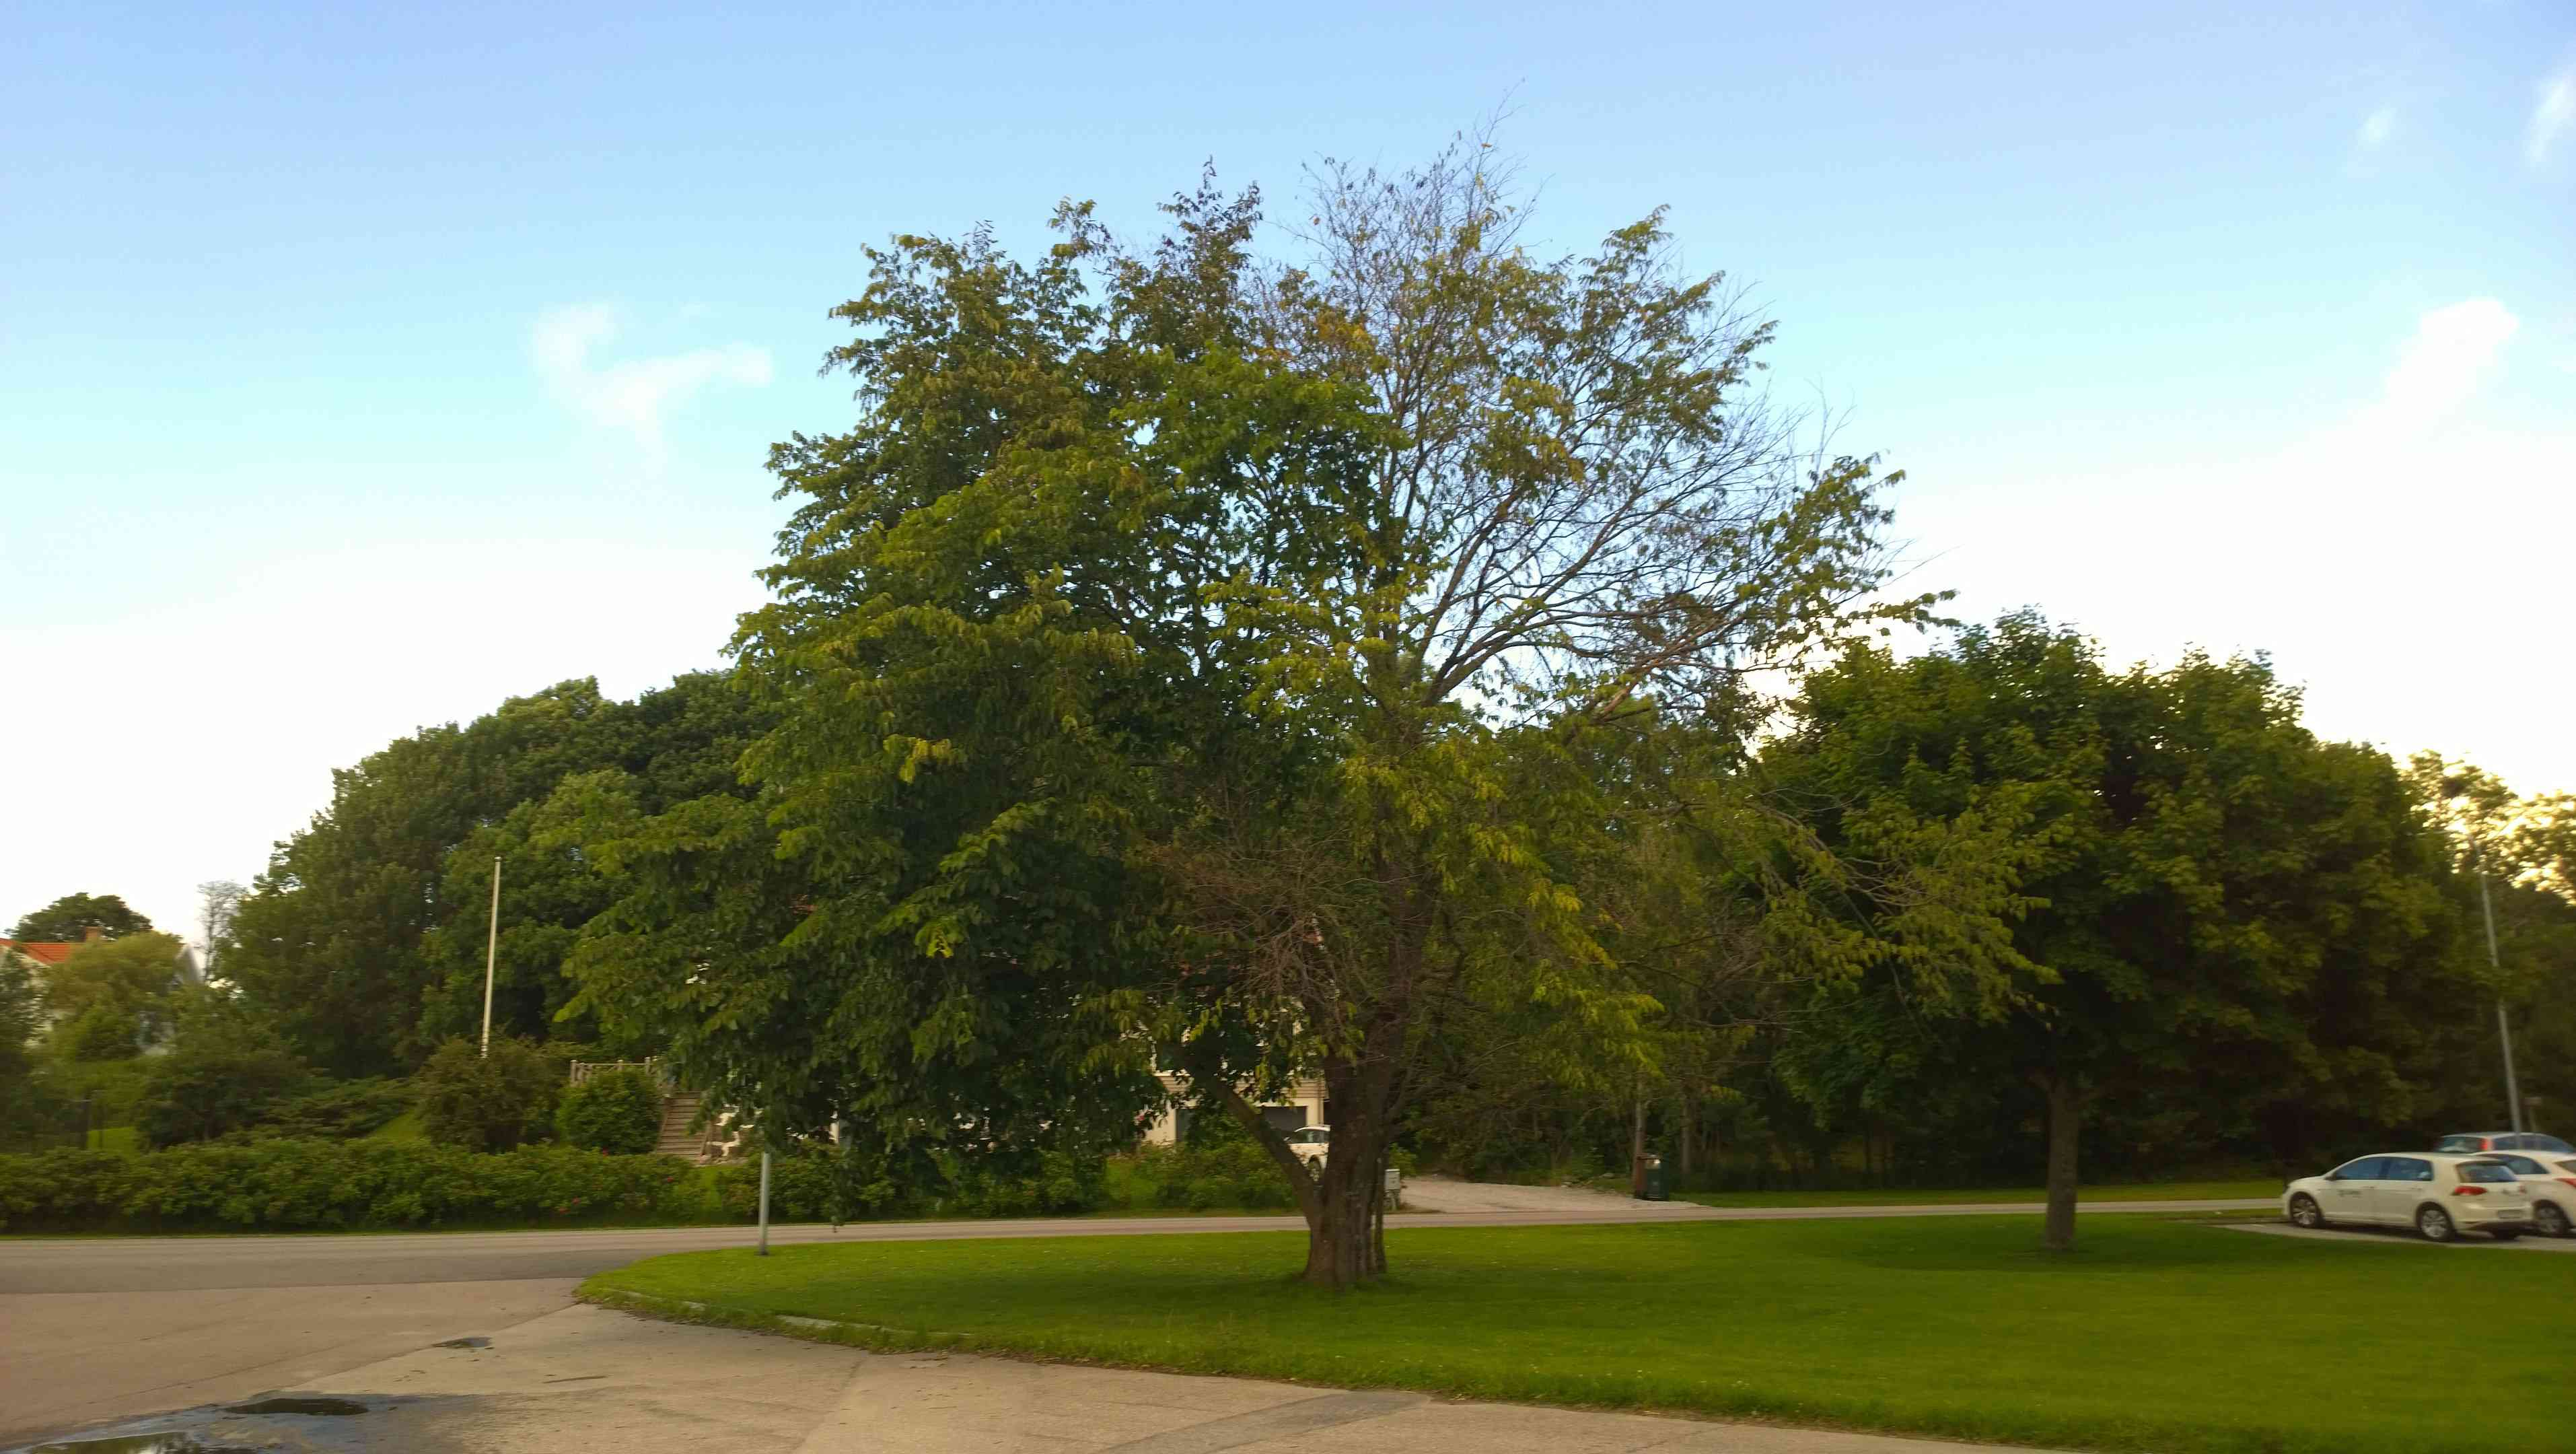 Elm tree with Dutch elm disease.